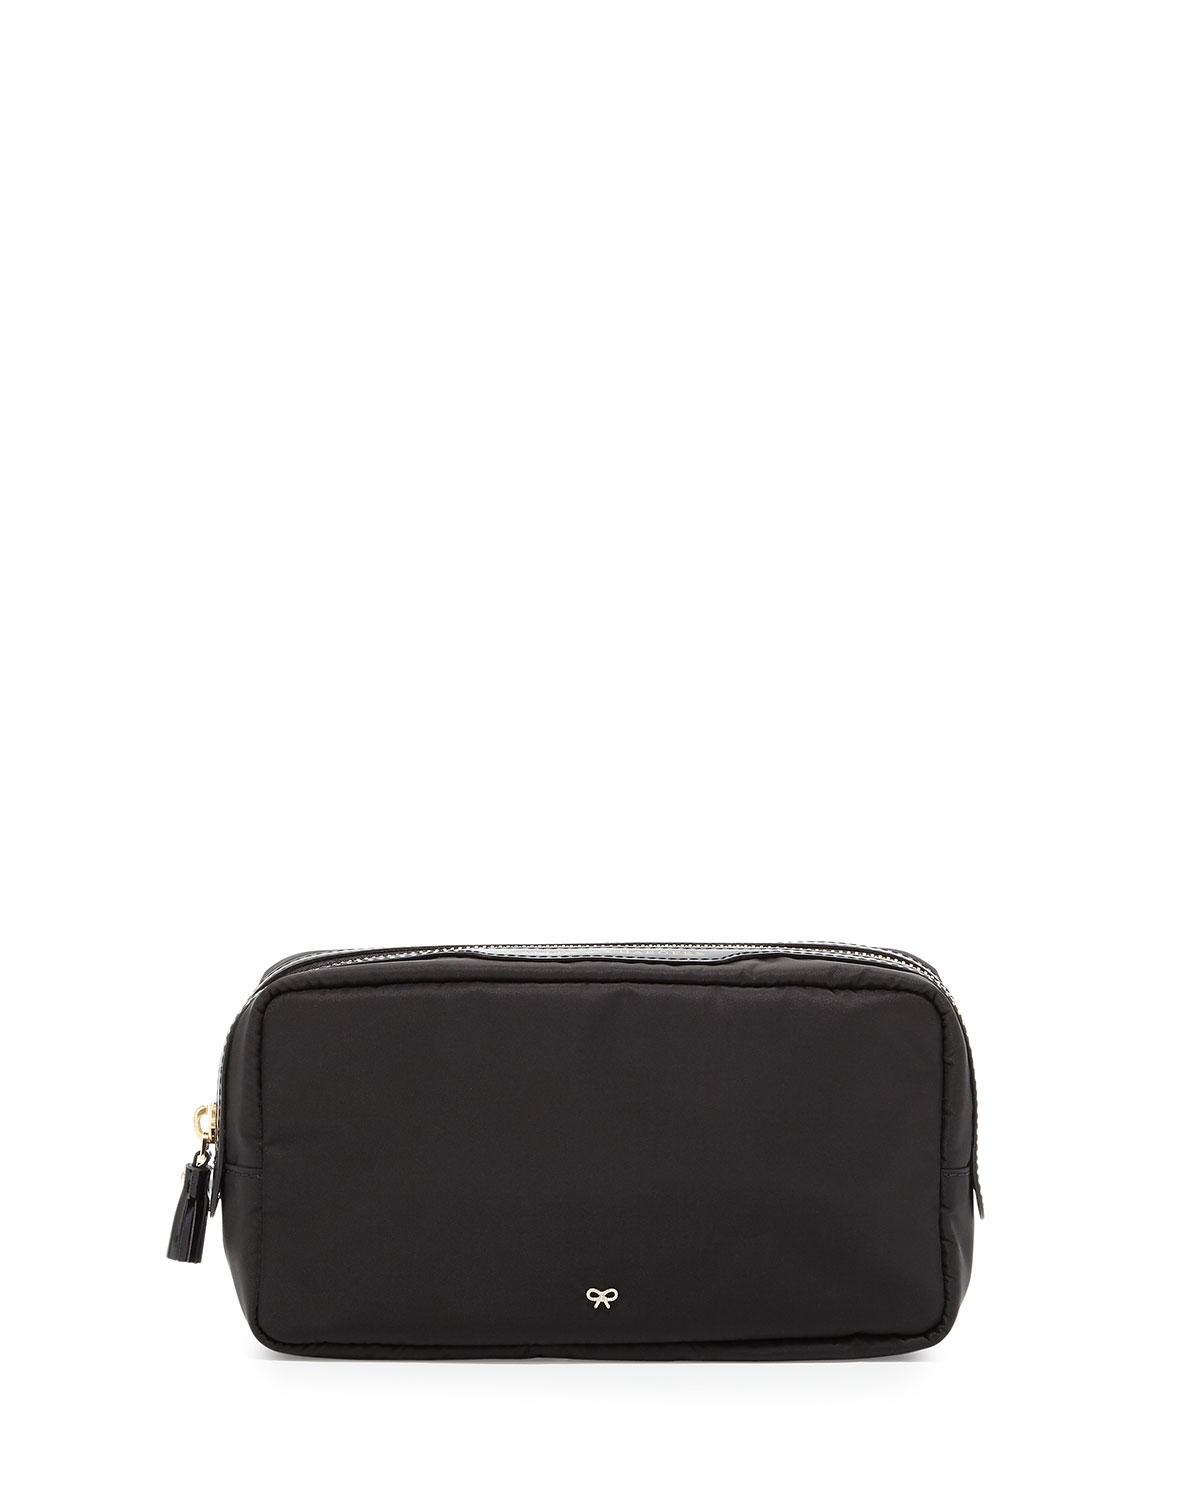 Cables and Chargers Nylon Pouch, Black